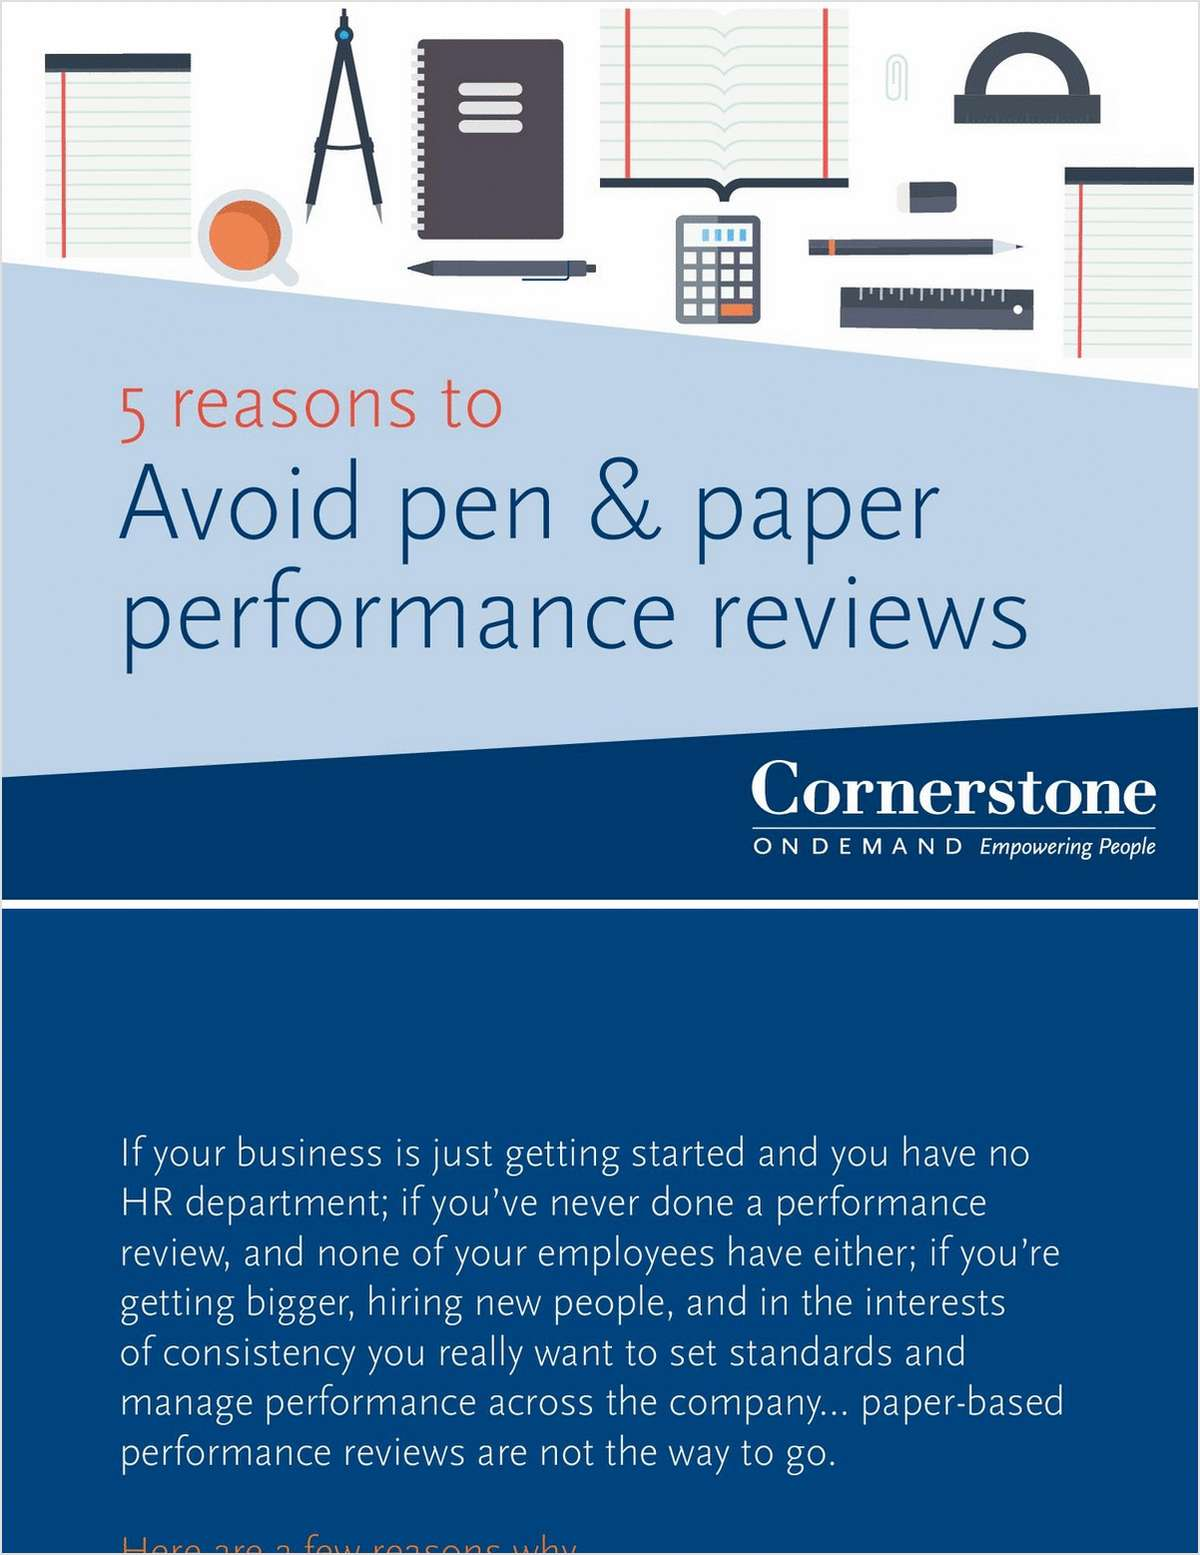 5 Reasons to Avoid Pen and Paper Performance Reviews